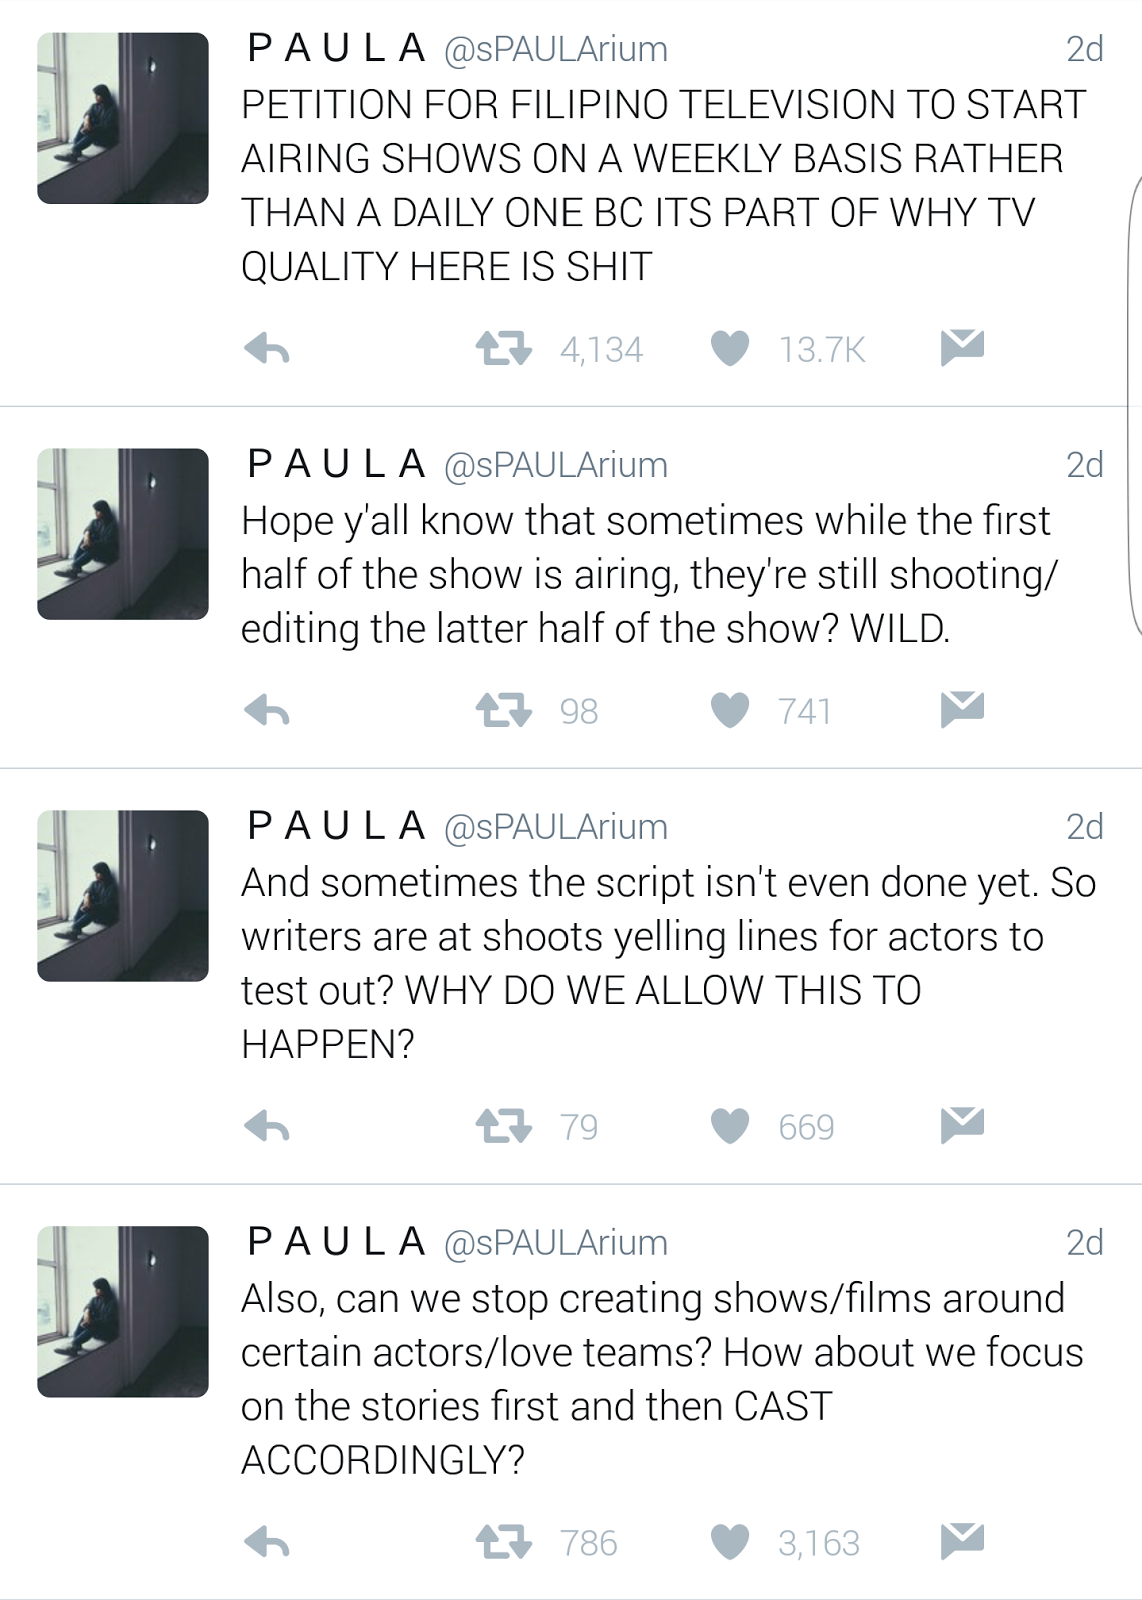 Fashion pulis tweet scoop bela padilla responds to netizen tweet scoop bela padilla responds to netizen lambasting system of producing teleseryes in the local scene ccuart